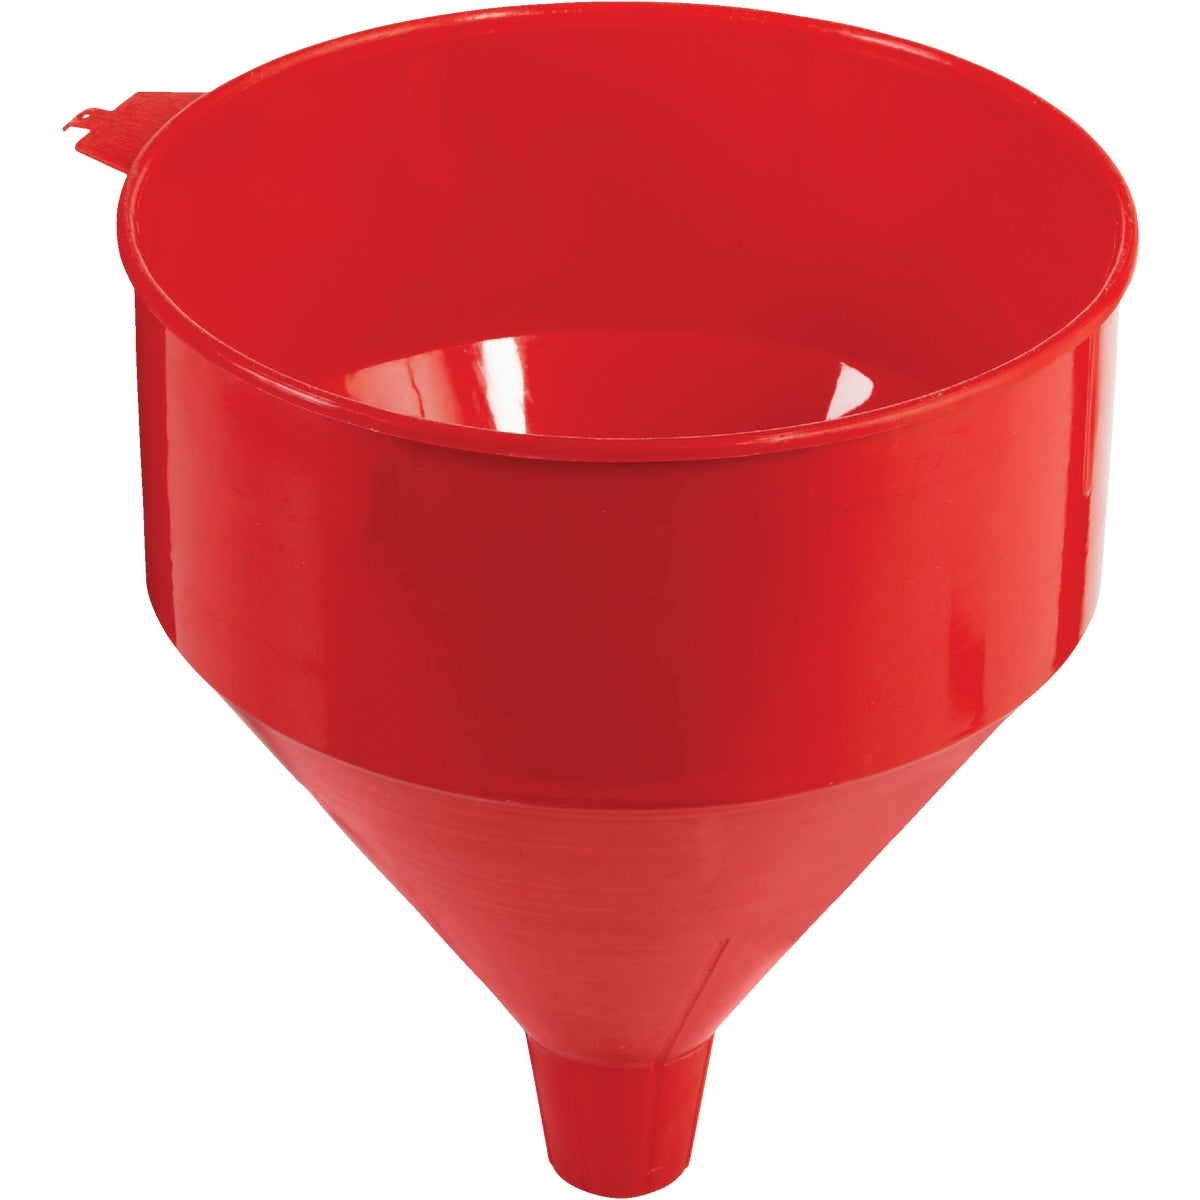 6QT PLASTIC FUNNEL - 75-072 by Plews  Lubrimatic